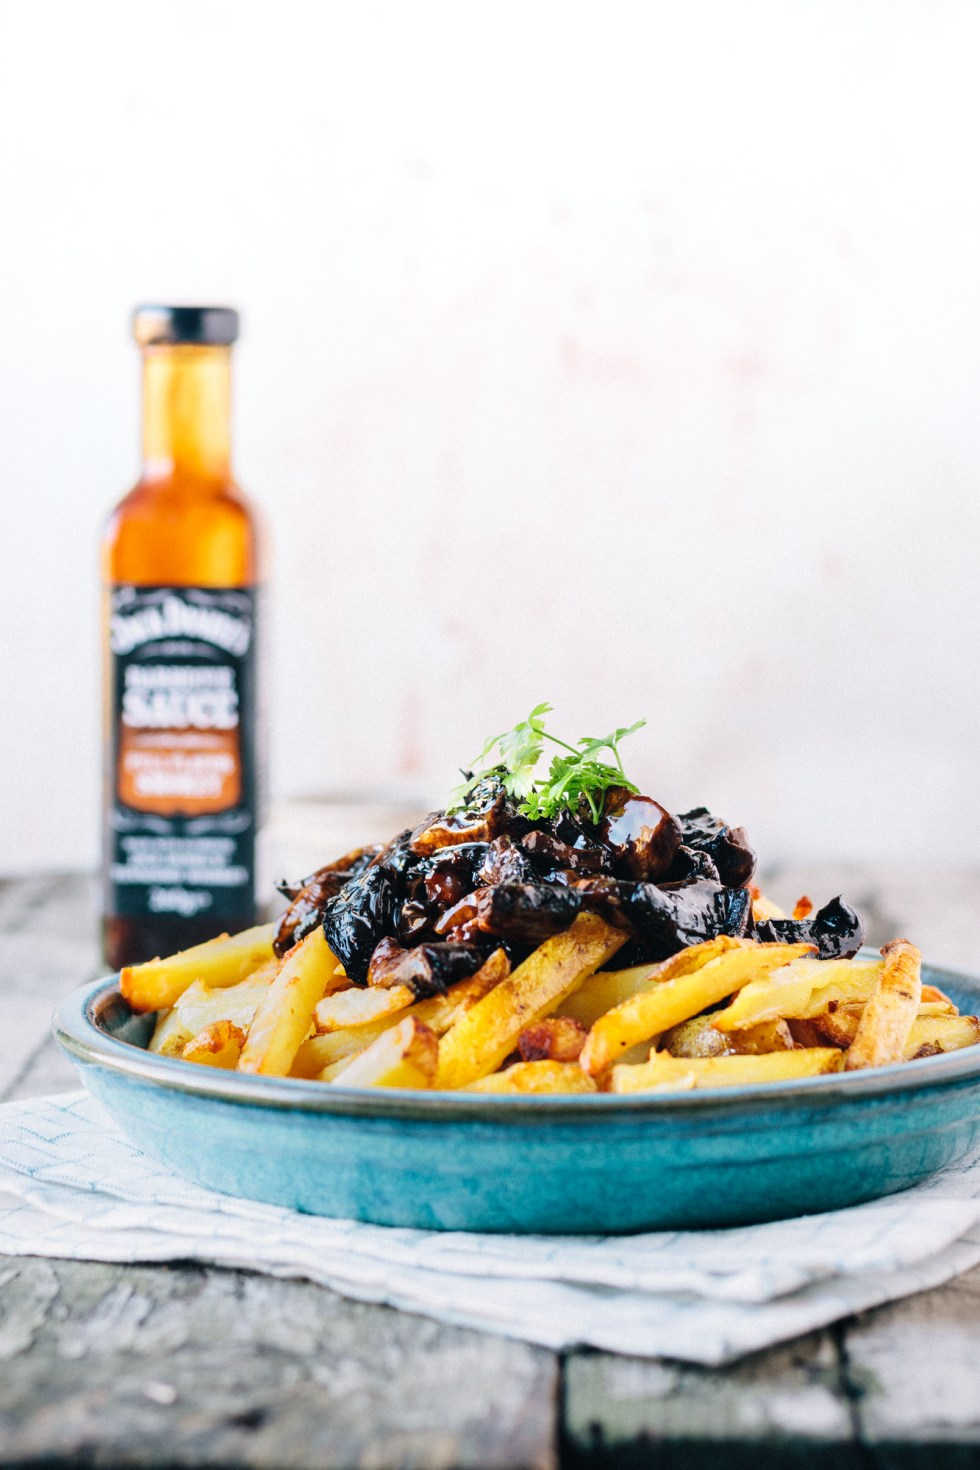 Vegan Baked Garlic Fries With Pulled BBQ Portobello Mushrooms ft Jack Daniels BBQ Sauces